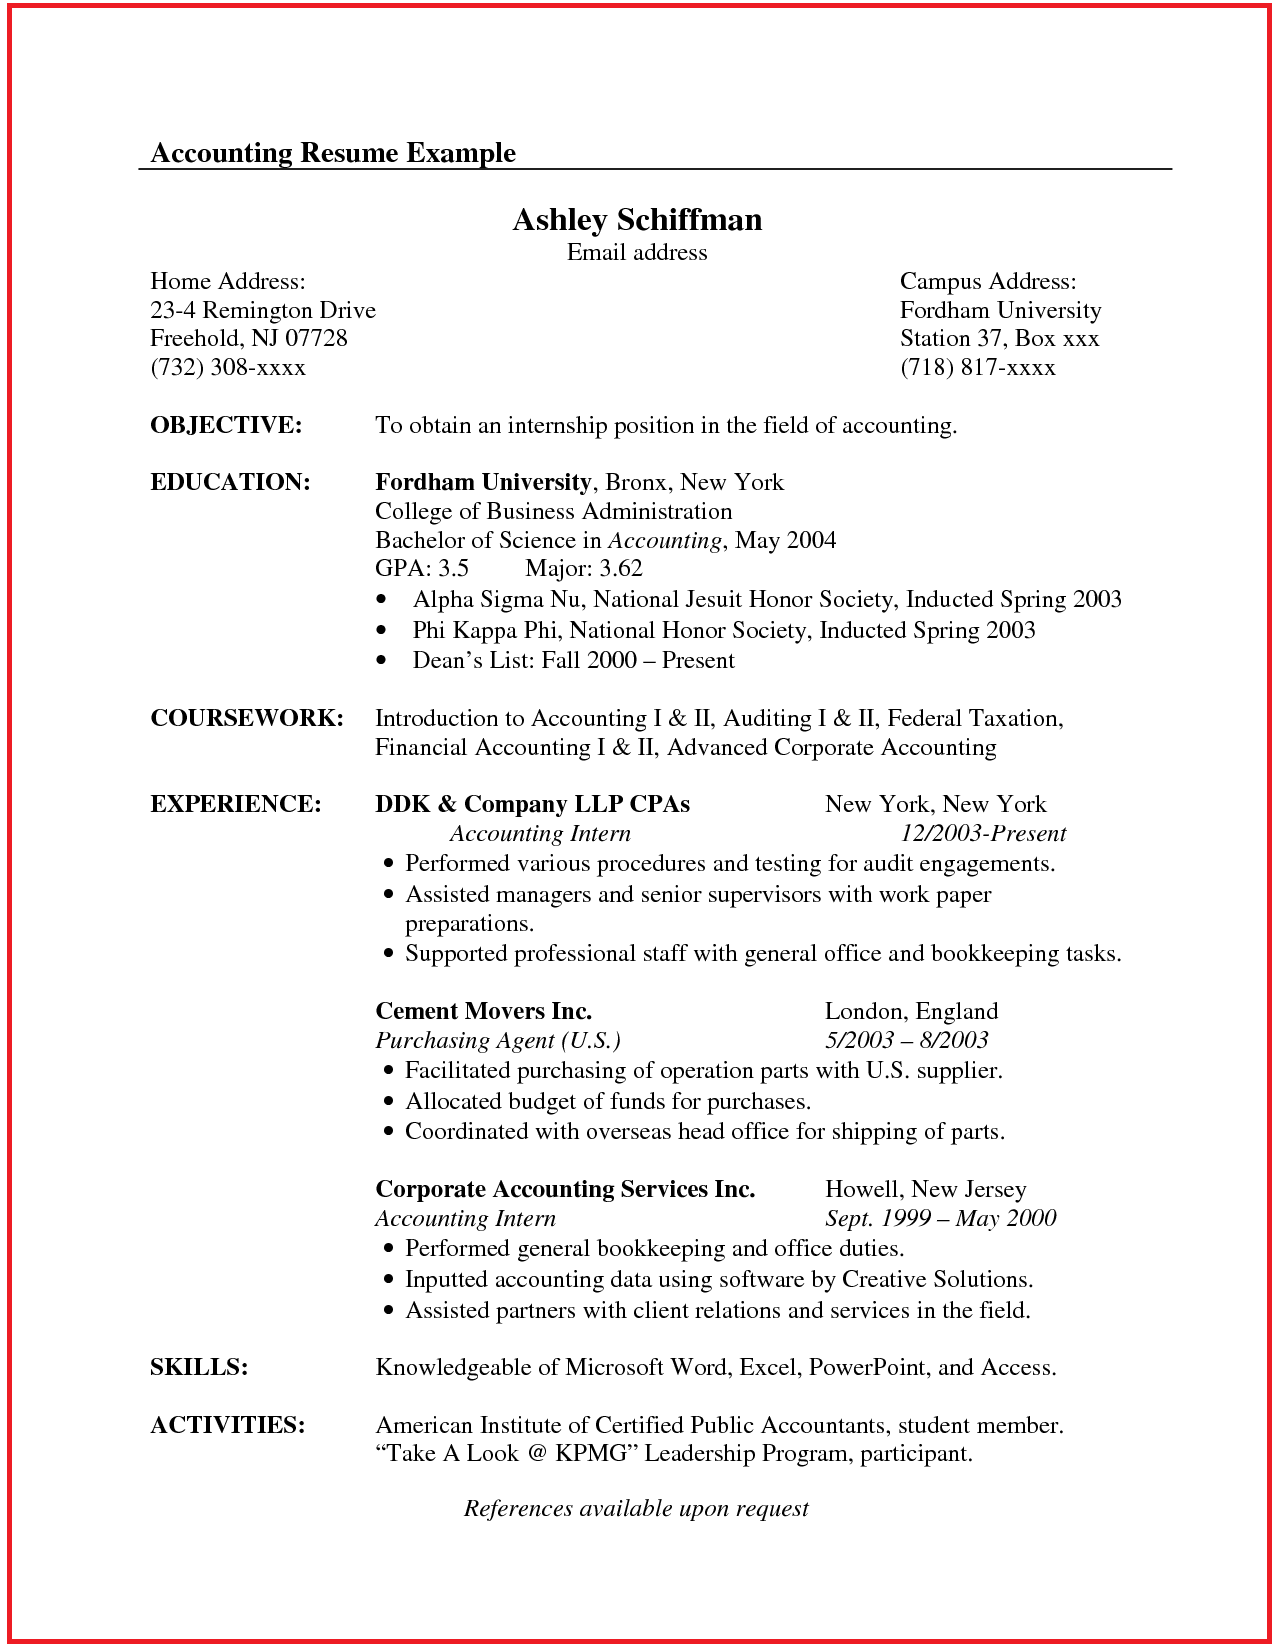 accountant resume sample canada httpwwwjobresumewebsiteaccountant resume sample canada